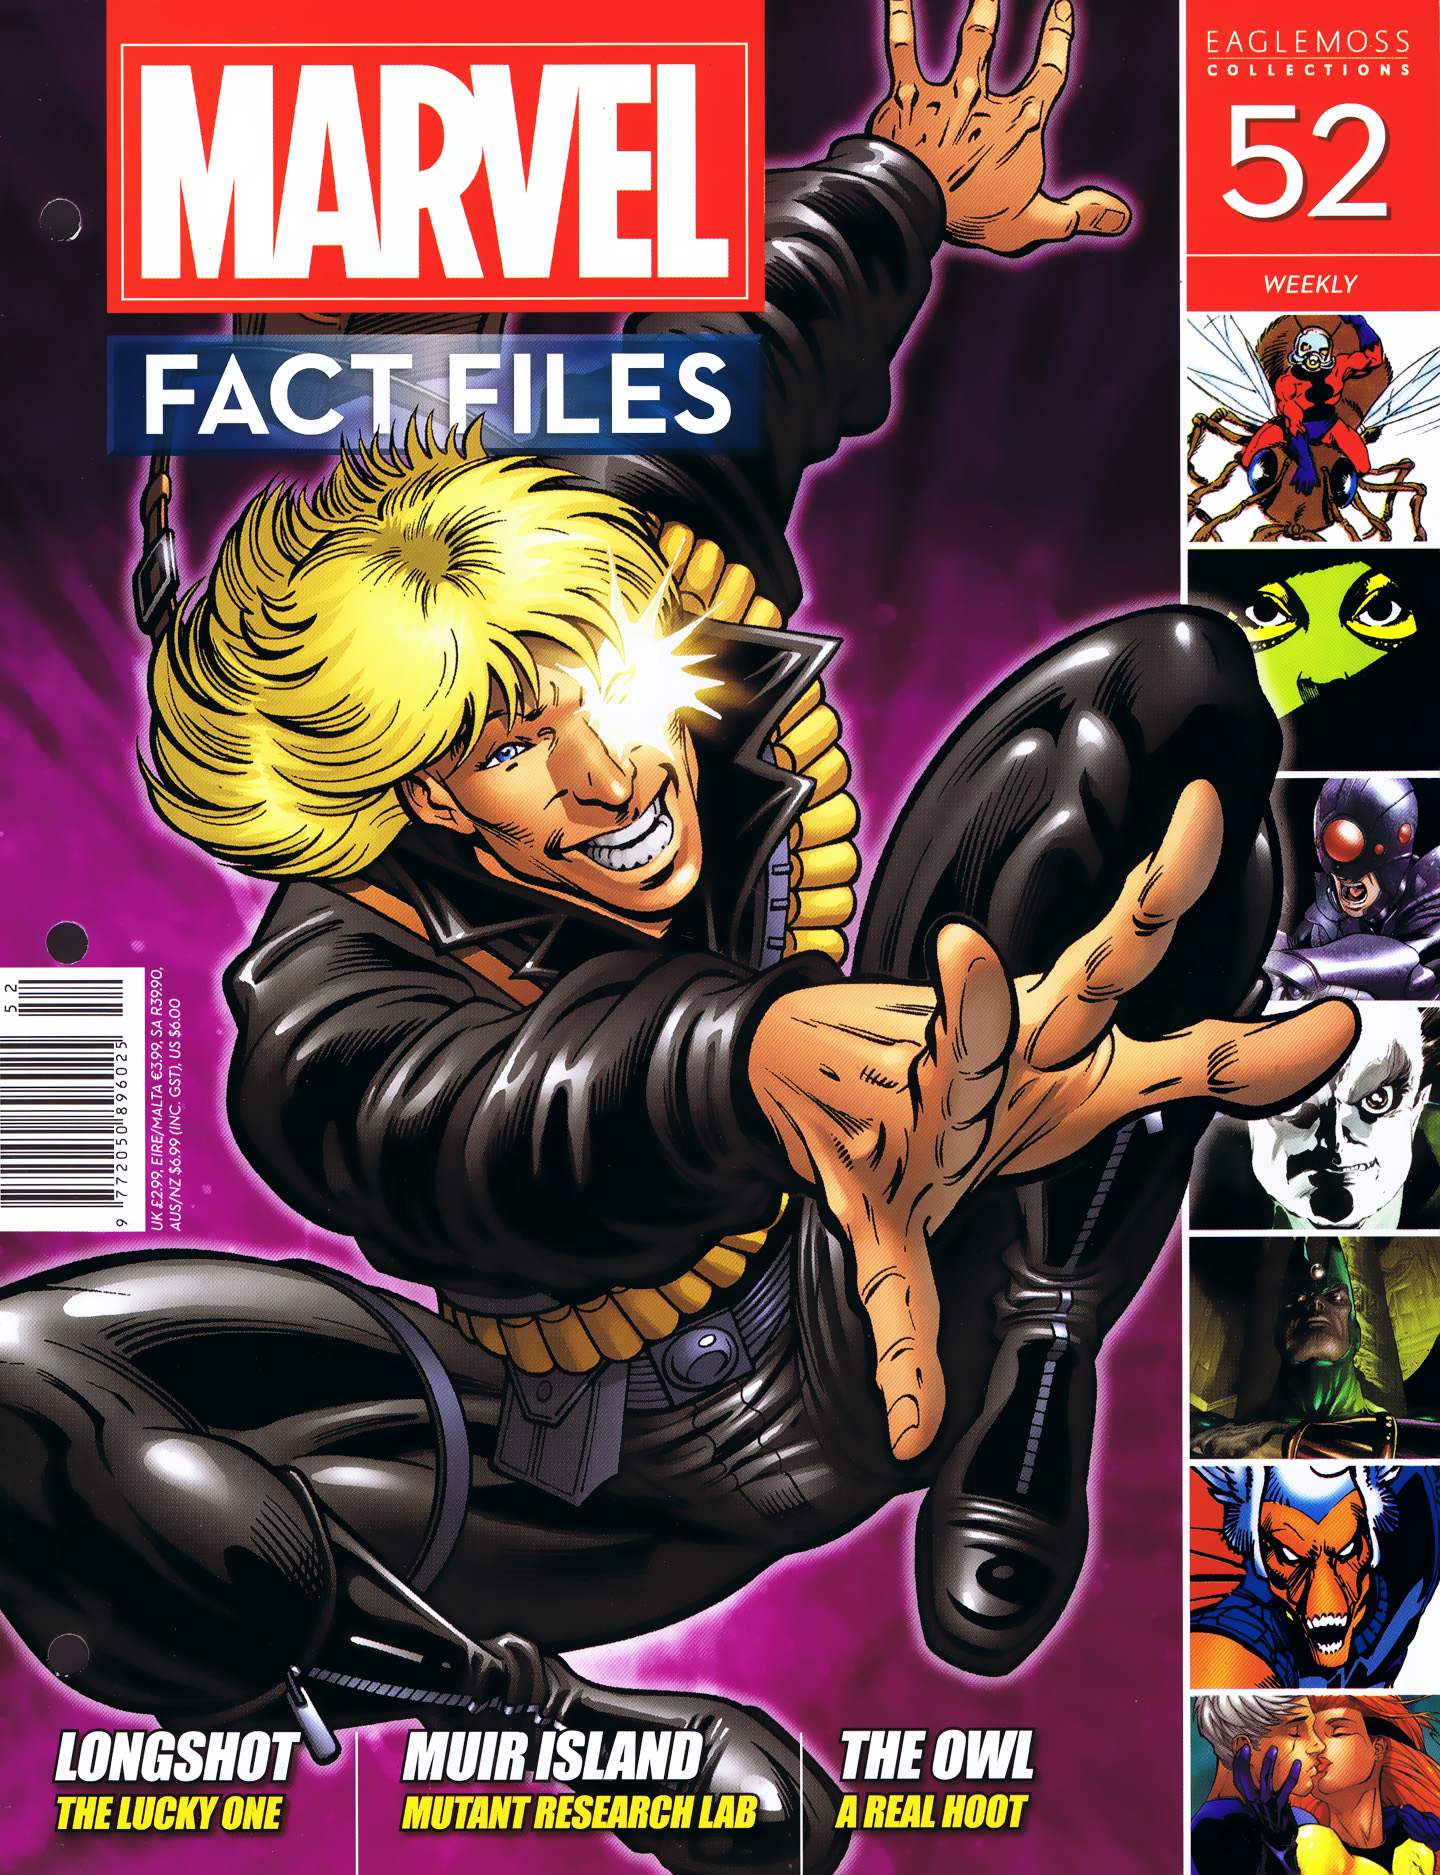 Marvel Fact Files 52 Page 1